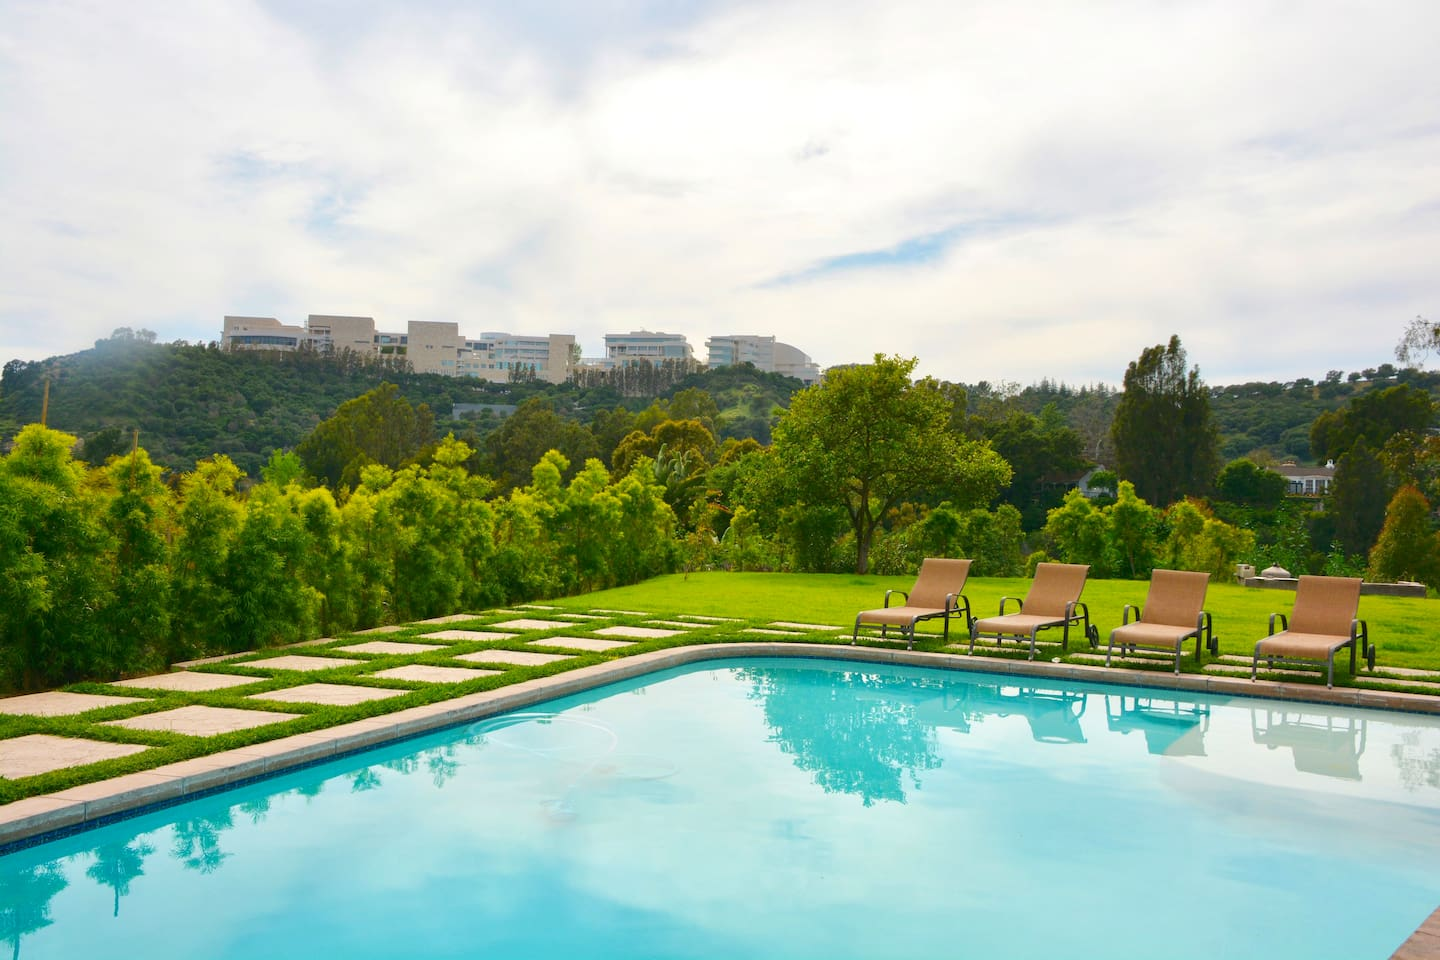 Patio view of the pool, mountains, and Getty Museum